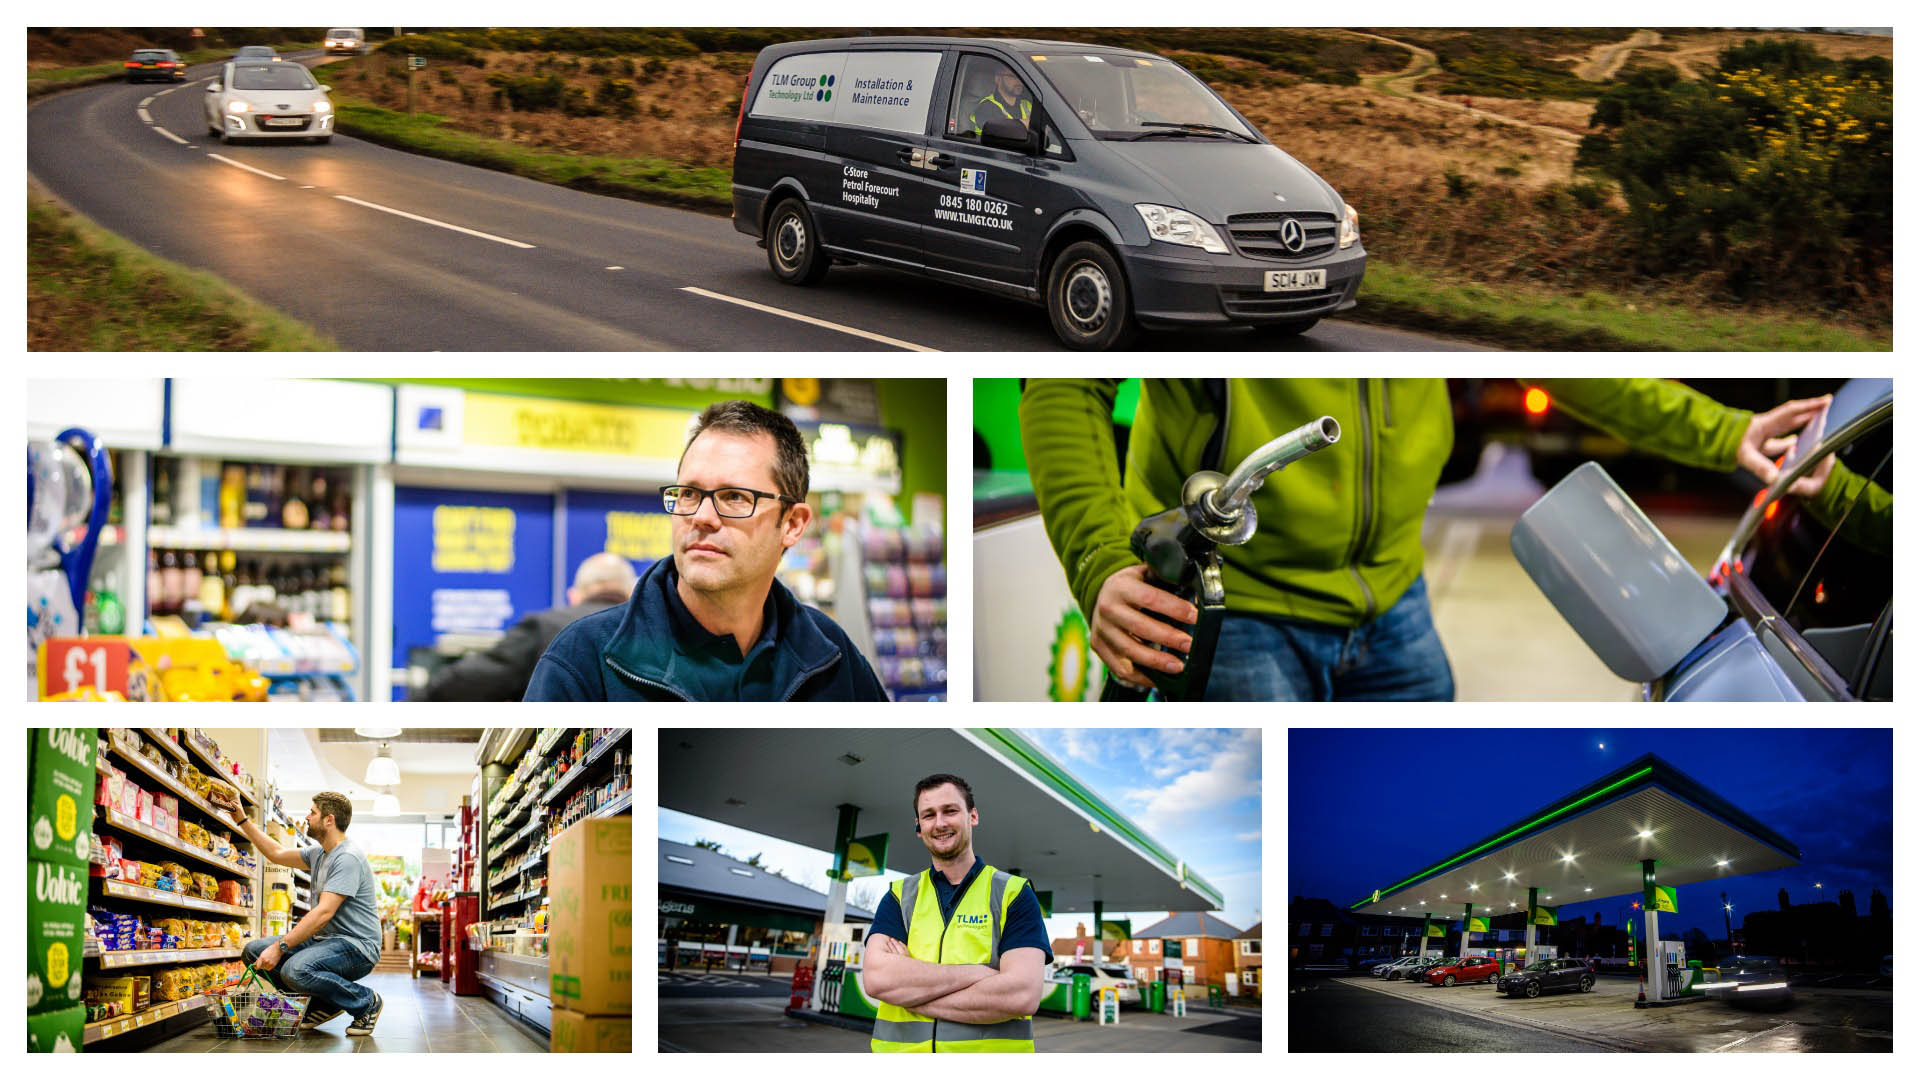 tlm-technologies-exeter-marketing-photography-by-commercial-photographer-chris-fossey-based-in-warwickshire-uk